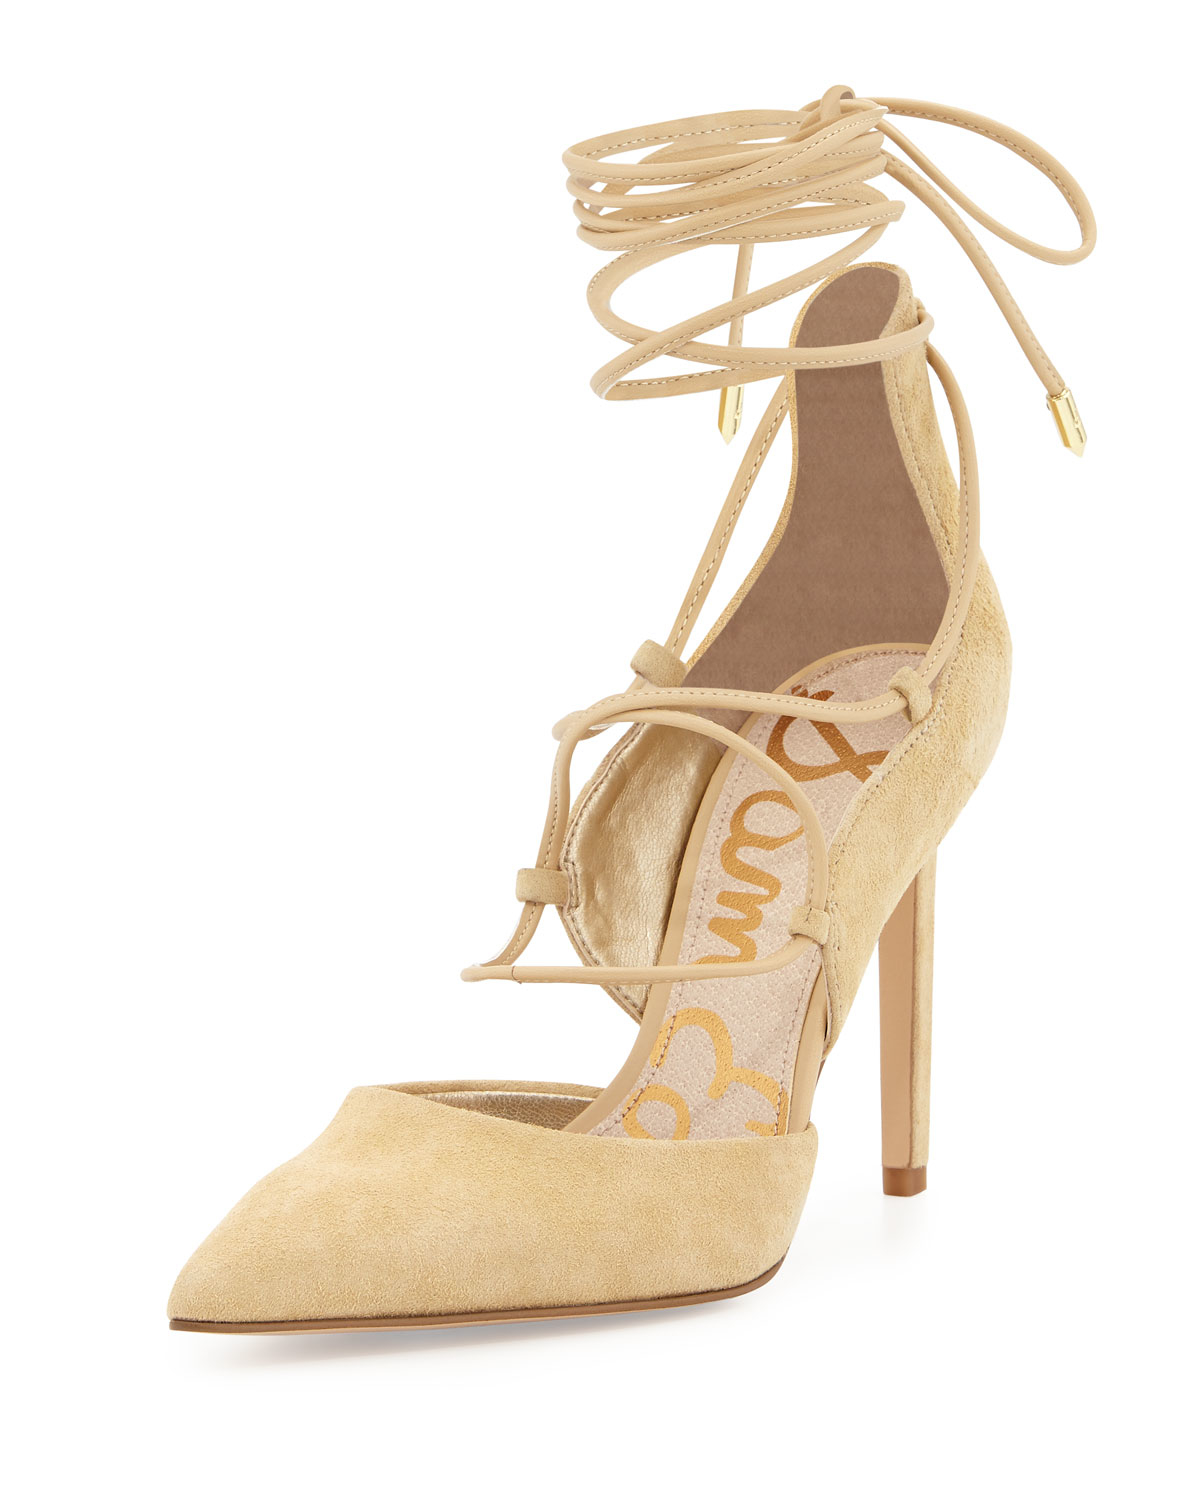 c415ec8192a5 Lyst - Sam Edelman Dayna Suede Lace-up Pump in Natural